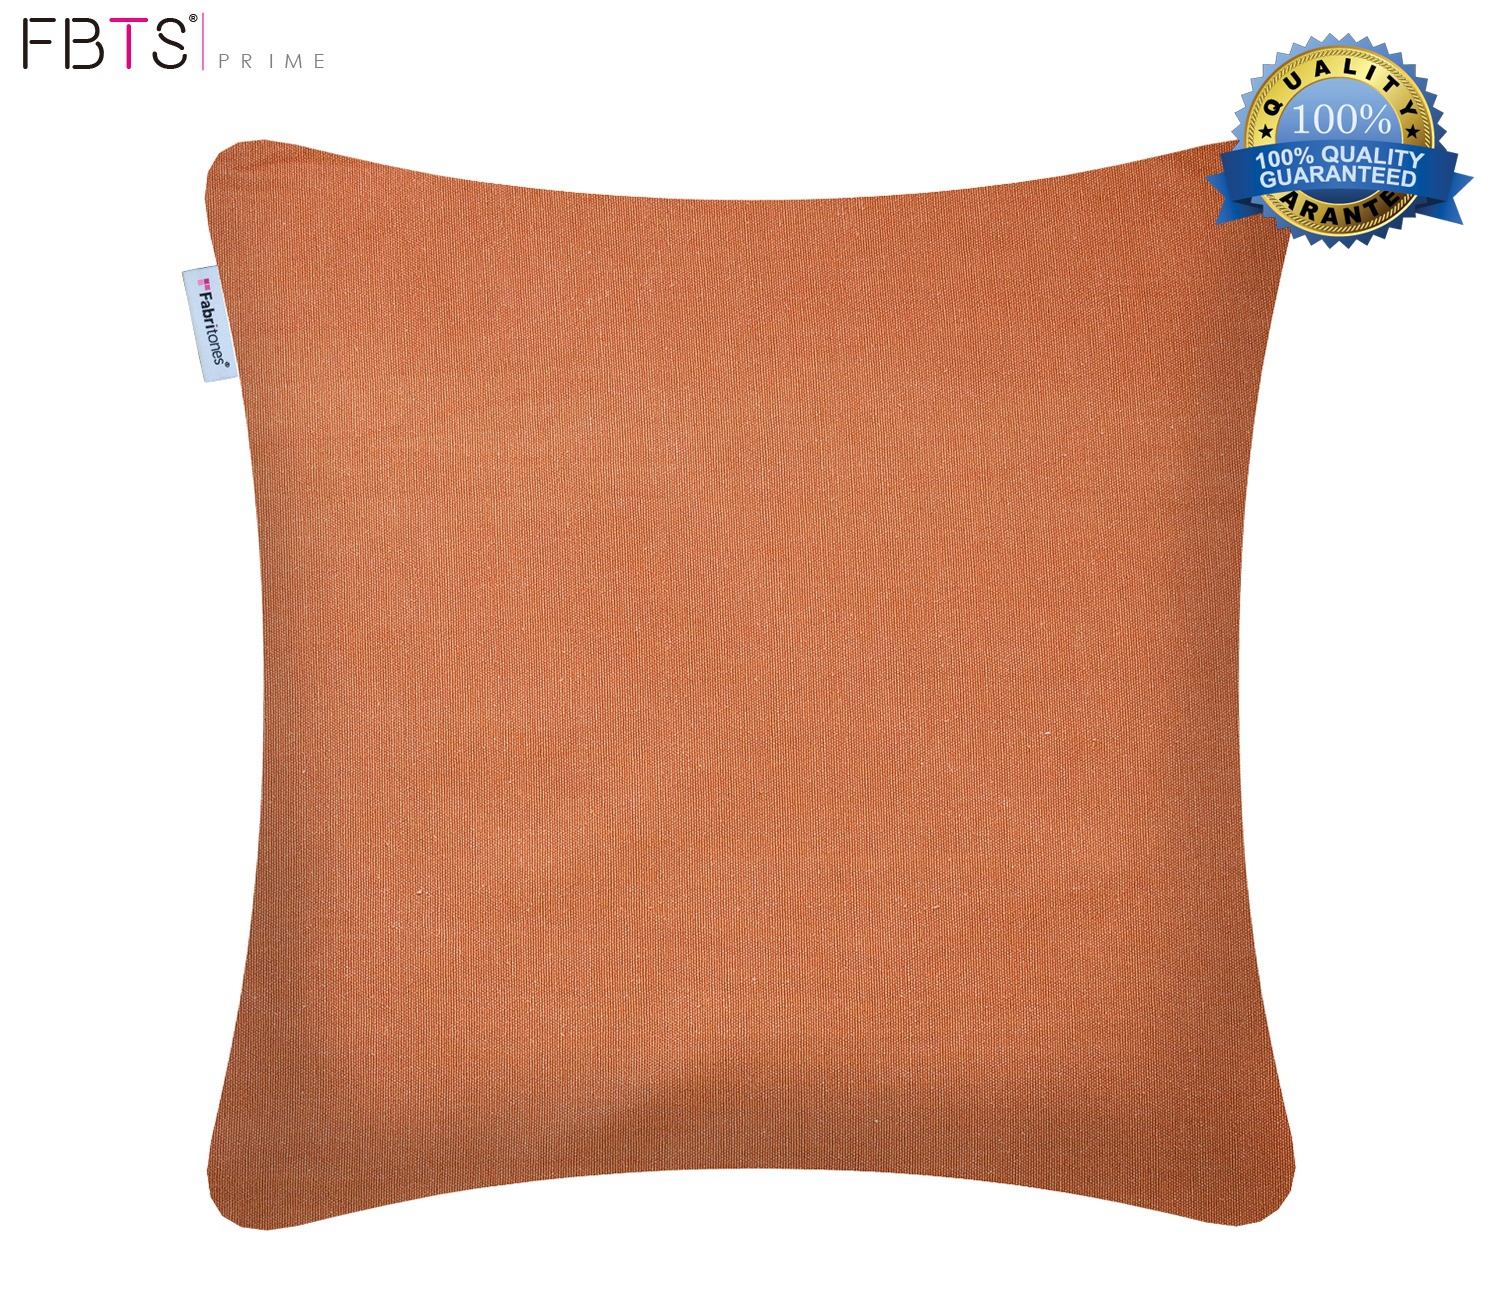 Throw Pillow Covers 18 X 18 Inches Orange Decorative